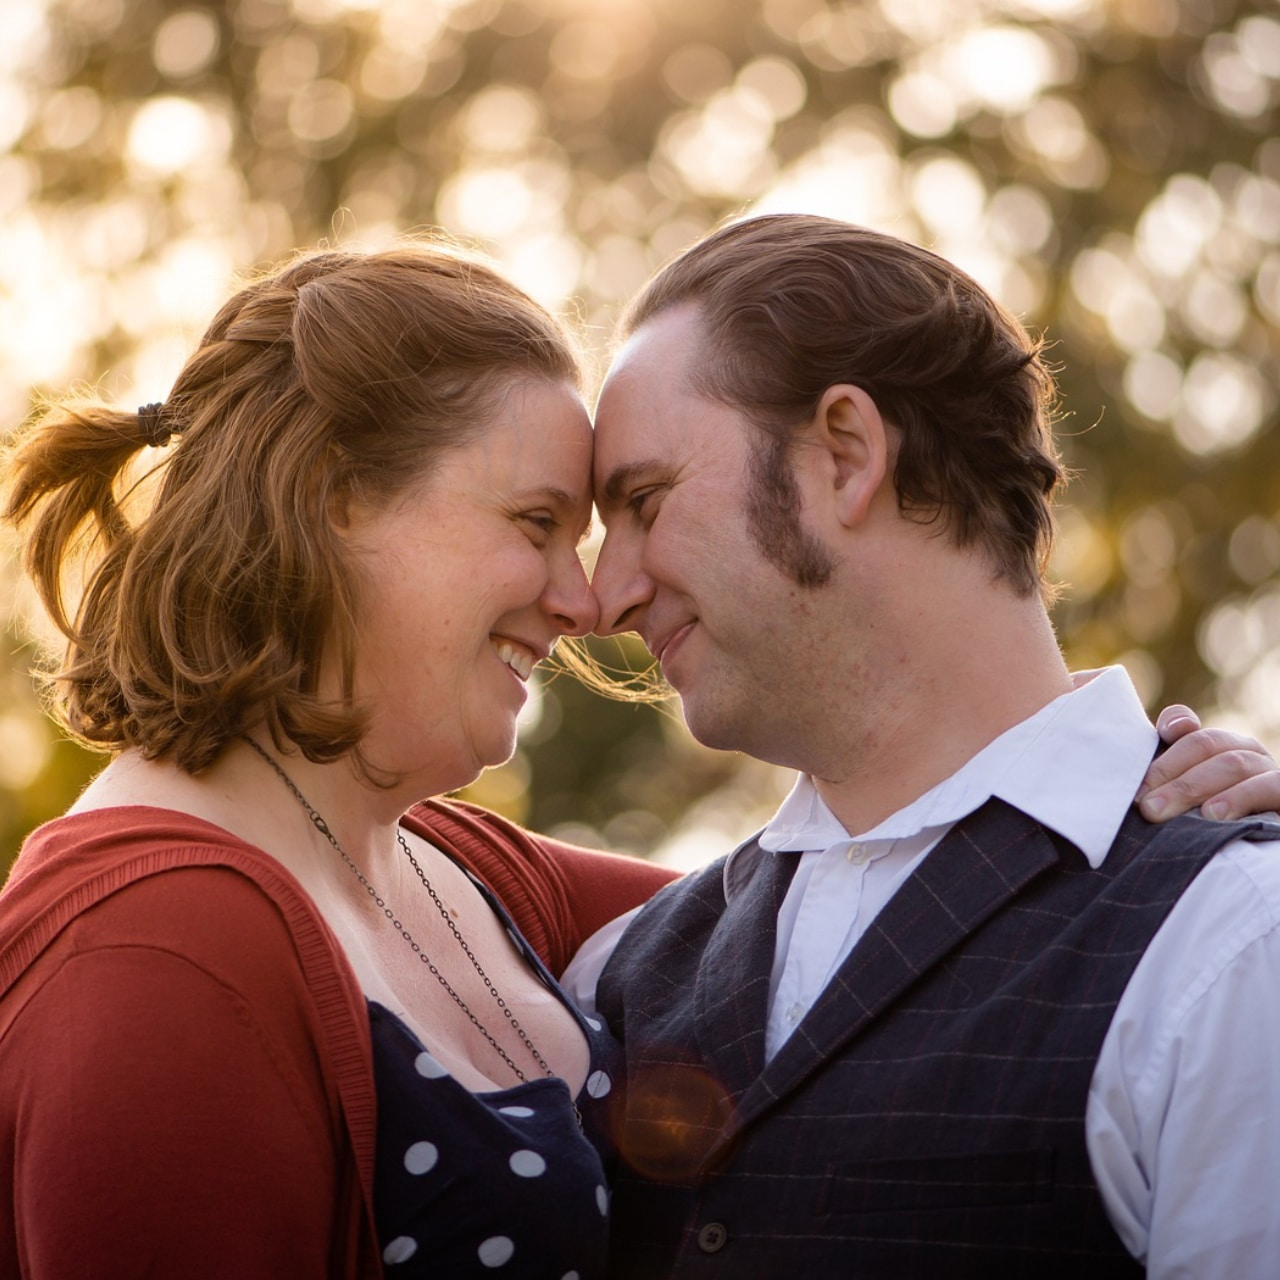 Photo of a couple face to face smiling.